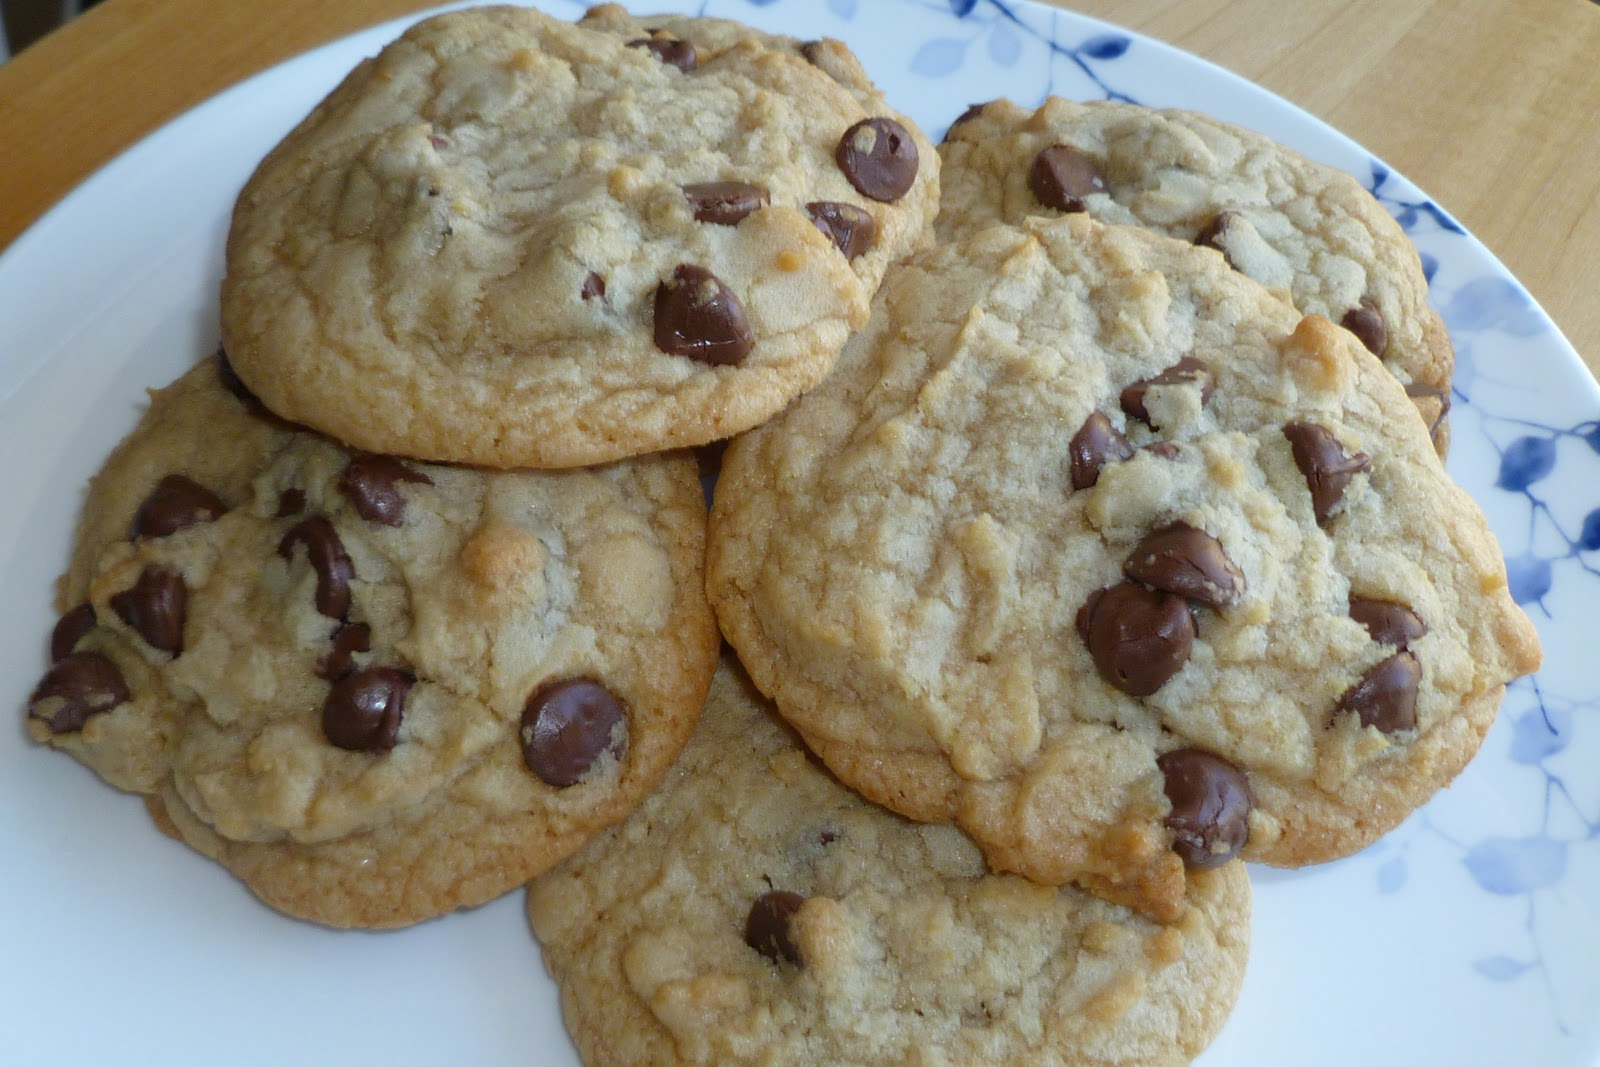 The Pastry Chef's Baking: Thick and Chewy Chocolate Chip ...